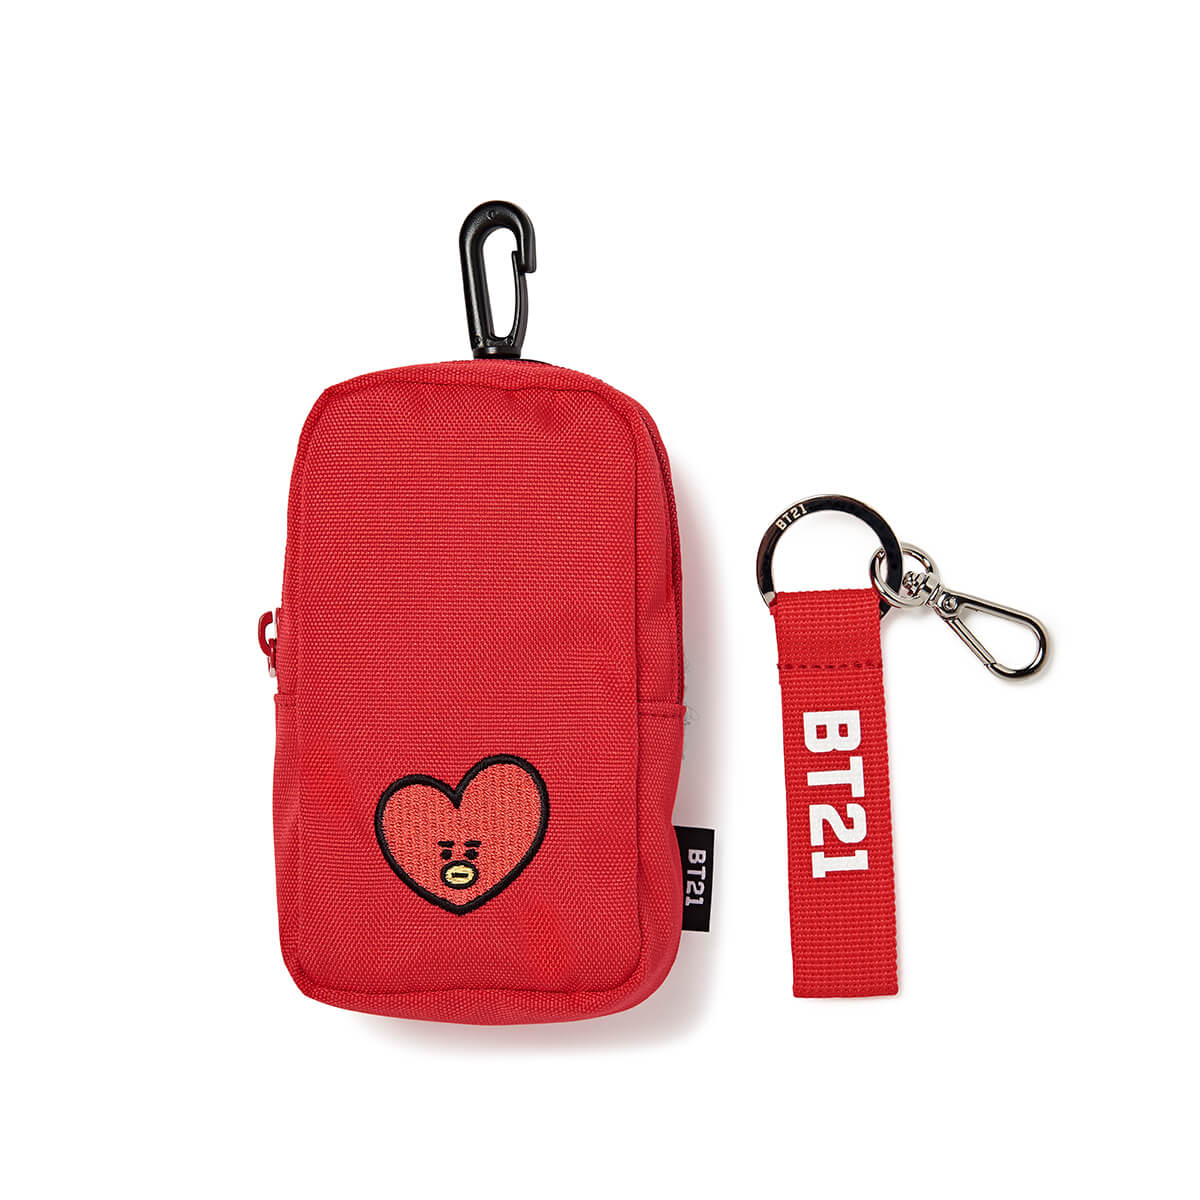 BT21 TATA Bag Charm Set (2)